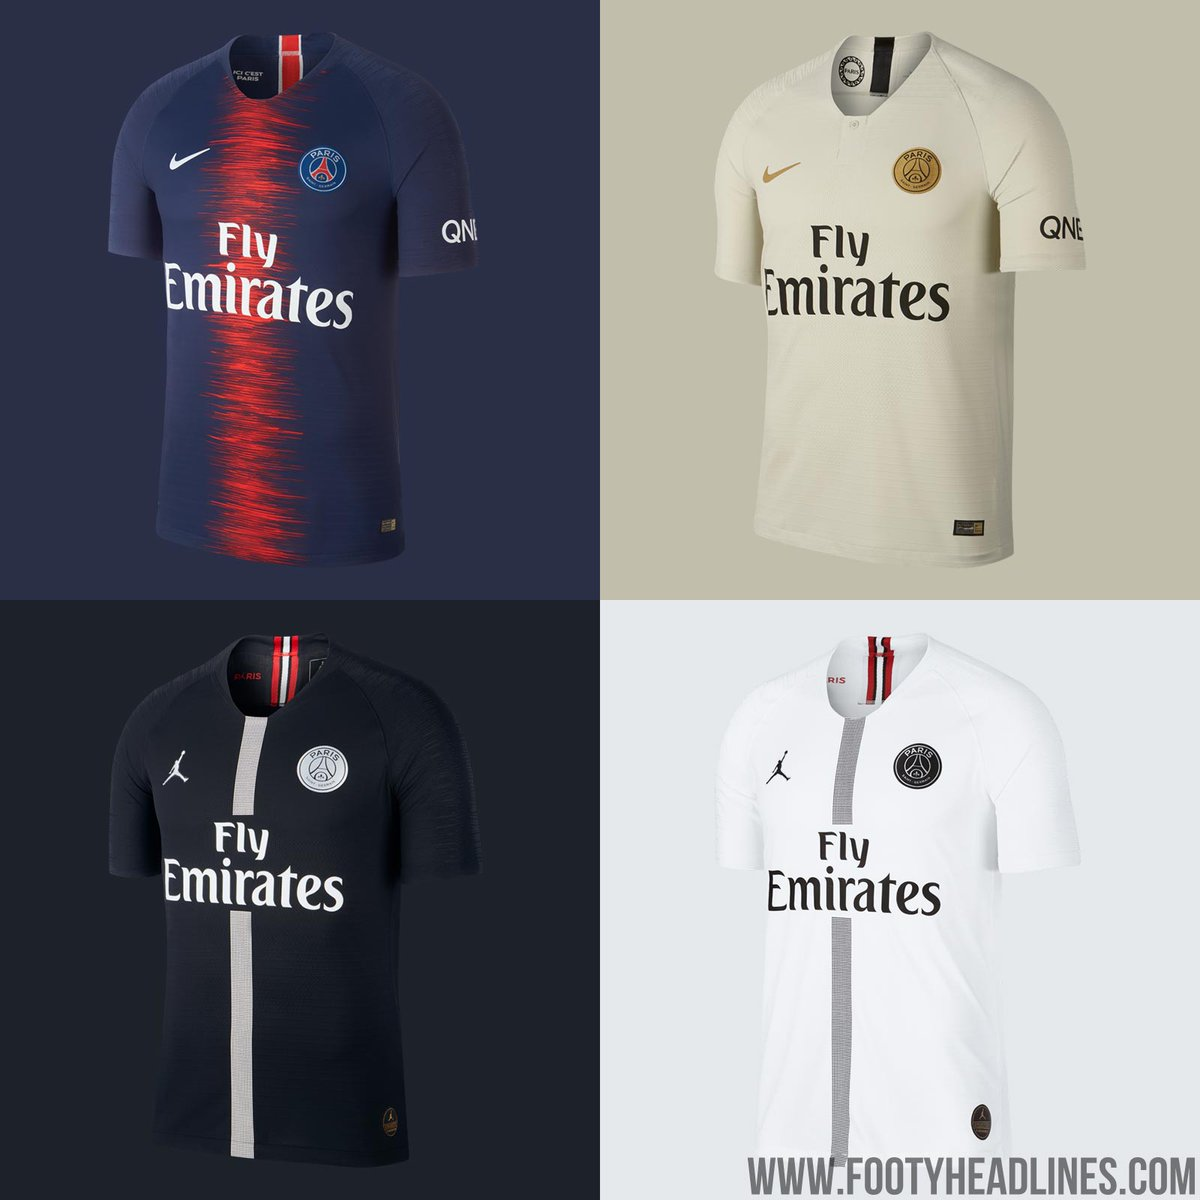 Footy Headlines On Twitter Psg S 4 Kits This Season Nike Will Release A Black Psg 4th Kit Next Season First Details Https T Co Syqlqjpudc